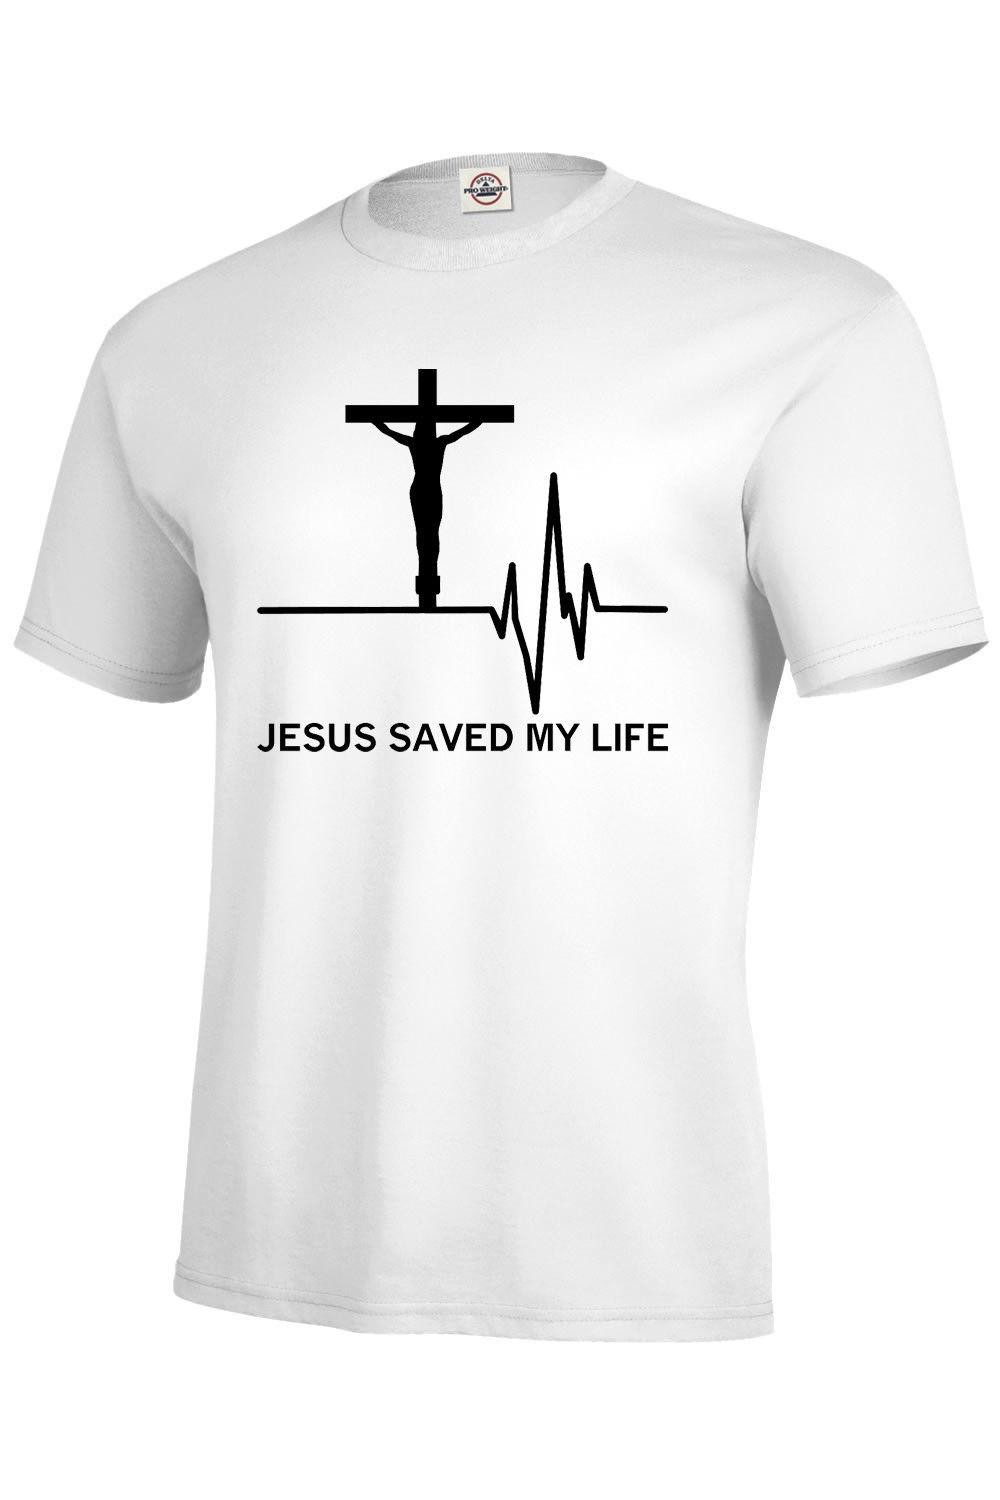 1ac9346295 JESUS SAVED MY LIFE T SHIRT ASSORTED COLORS BEST SELLER S 5XL,KIDS XS2 4  XL18 20 Colour Jersey Print T Shirt As T Shirts Fun Tee Shirts From  Greycup, ...